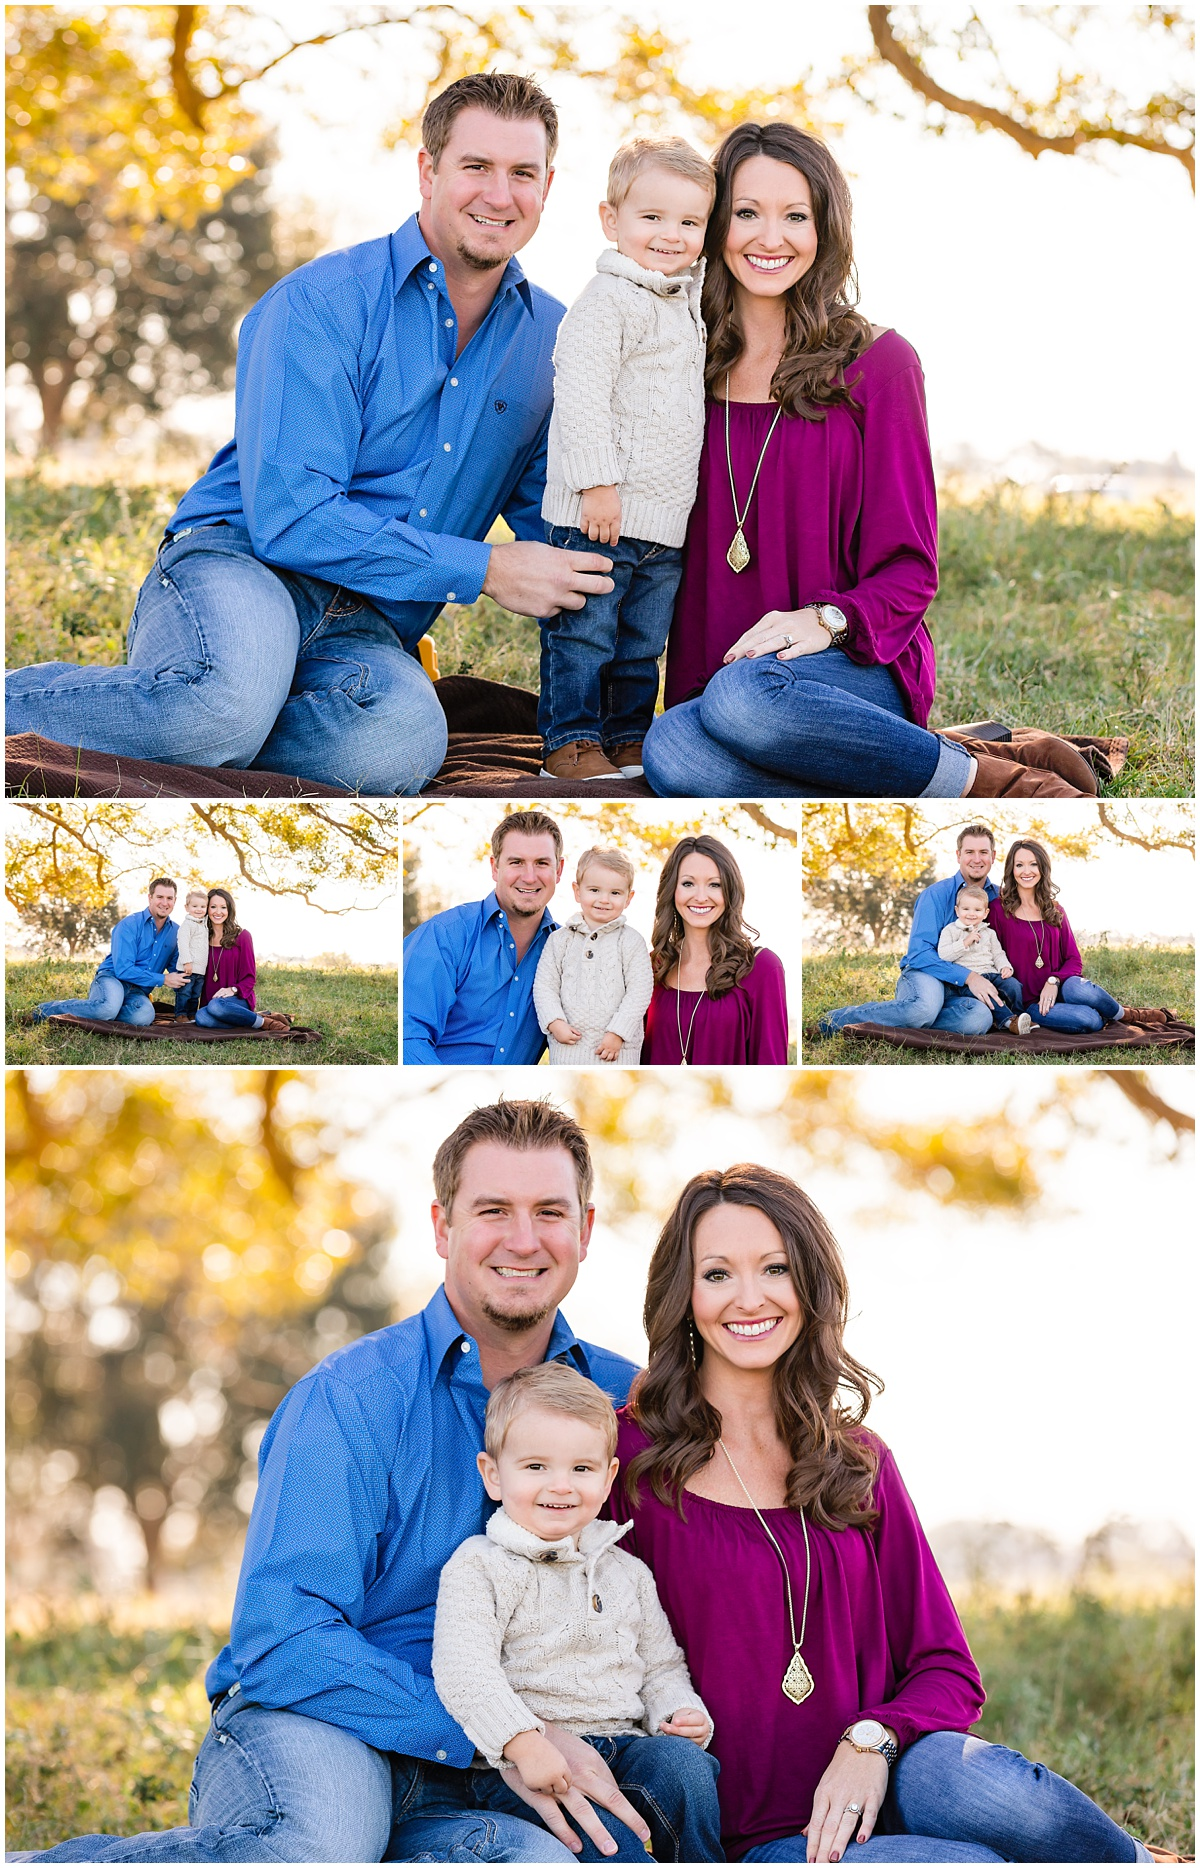 Family-Children-Maternity-Portraits-San-Antonio-Hill-Country-Texas-Carly-Barton-Photography_0062.jpg